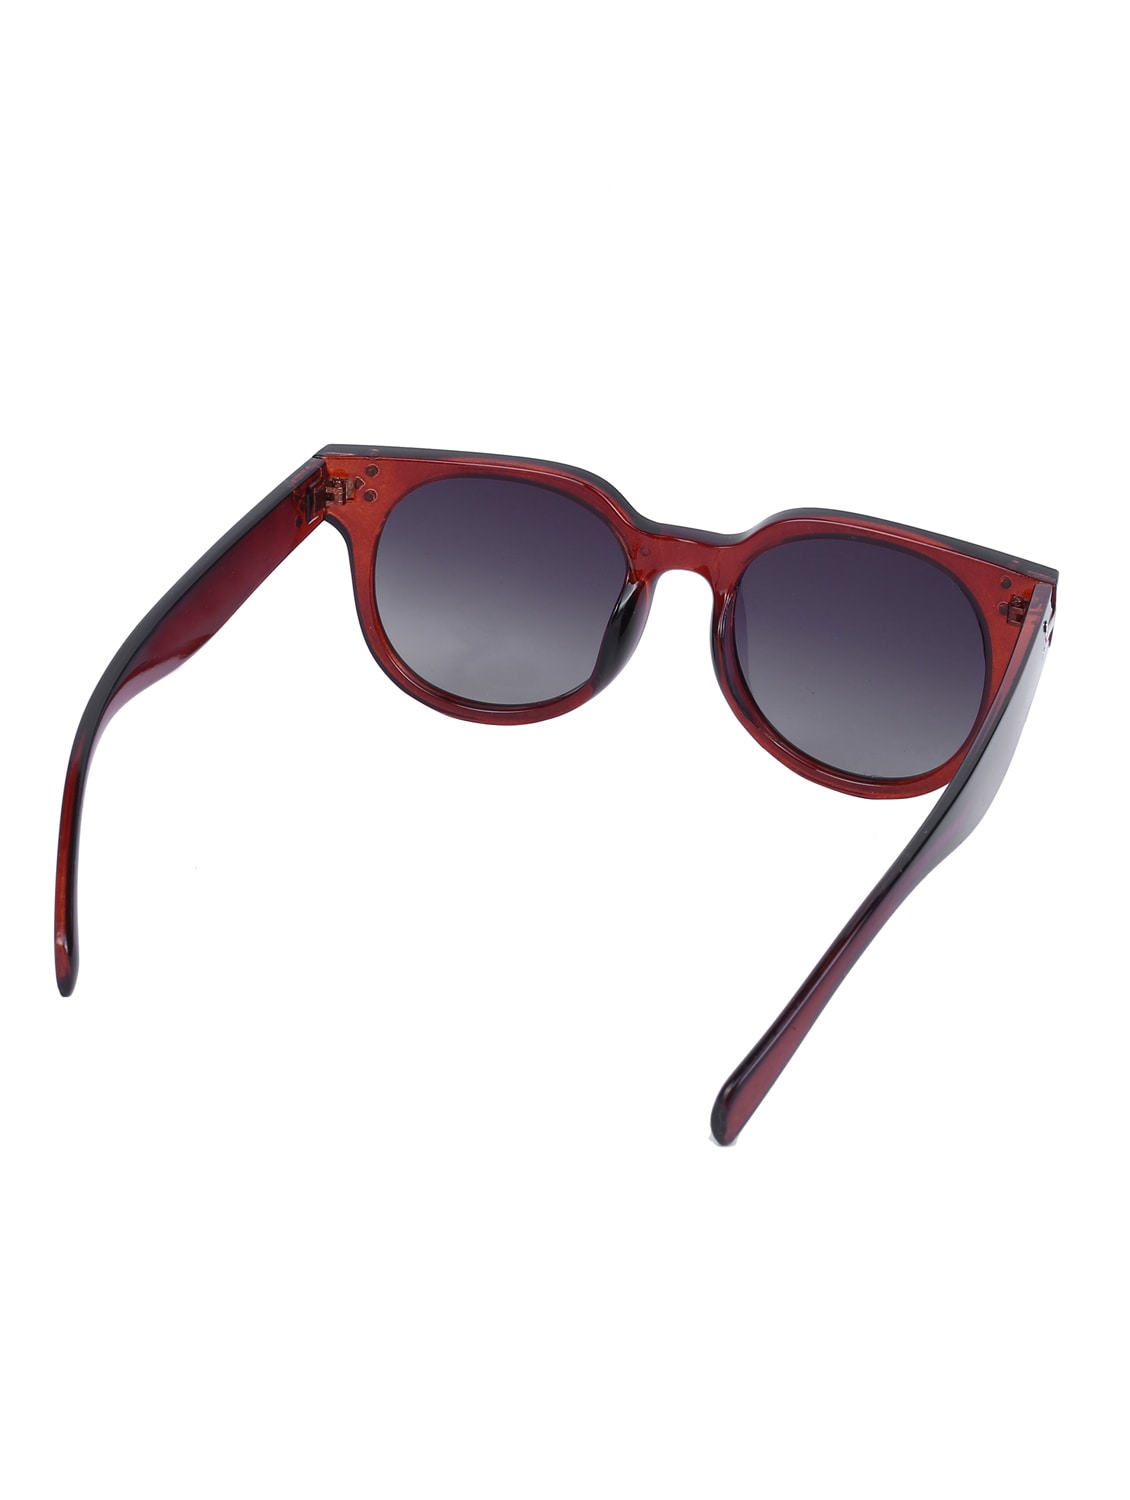 dbb85c27be2 Buy Uv Protected Oversize Sunglass by Hawai - Online shopping for Sunglasses  in India